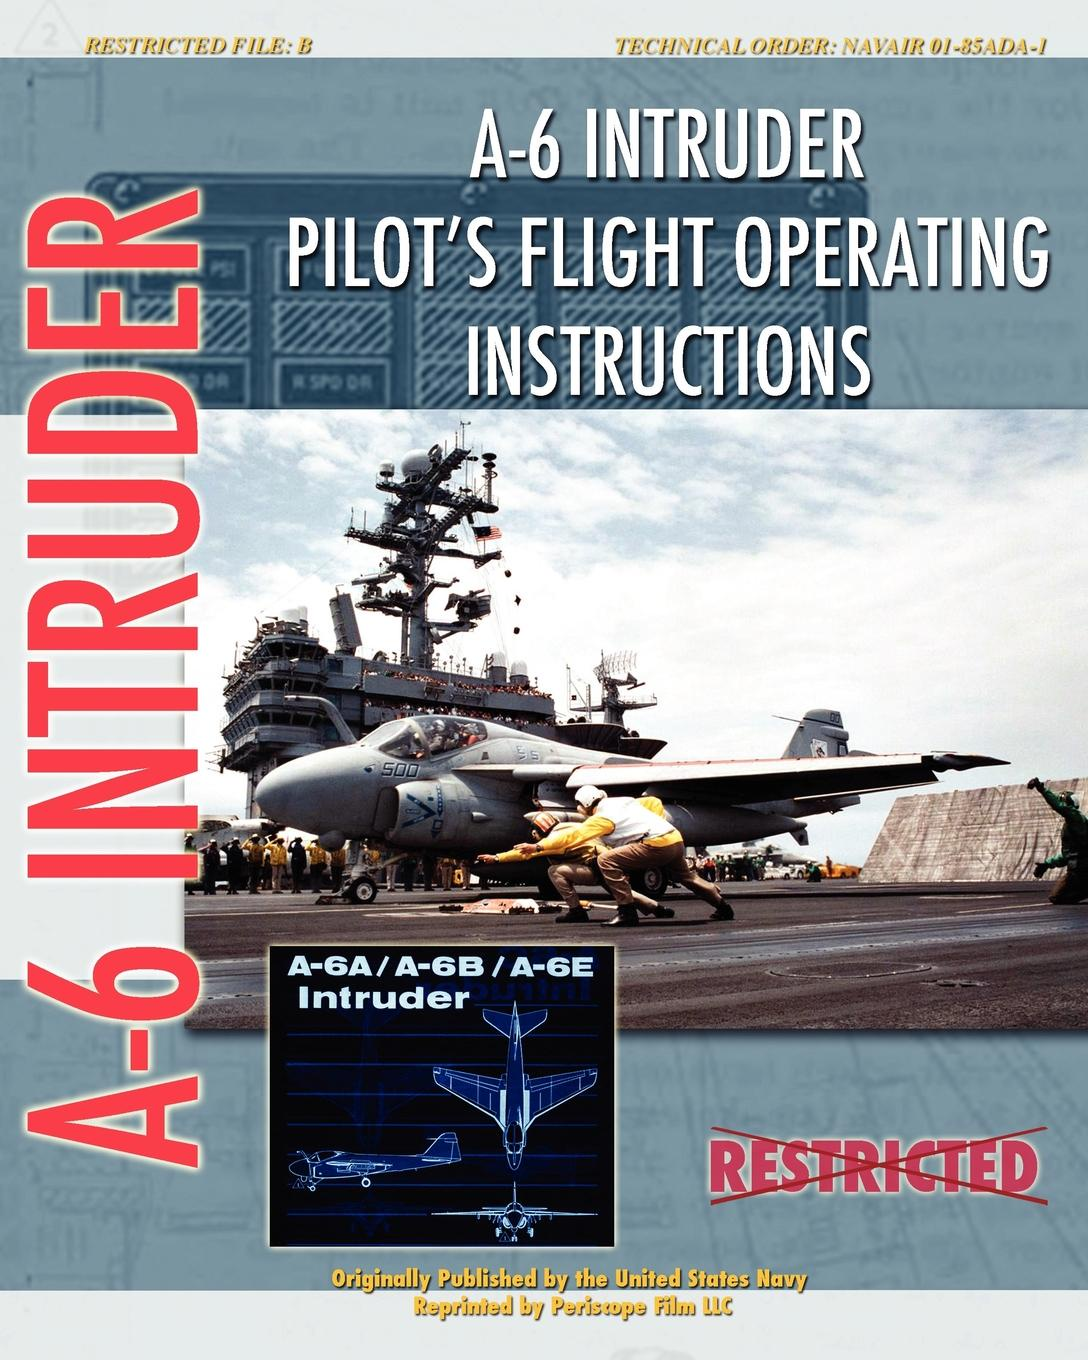 United States Navy A-6 Intruder Pilot's Flight Operating Instructions